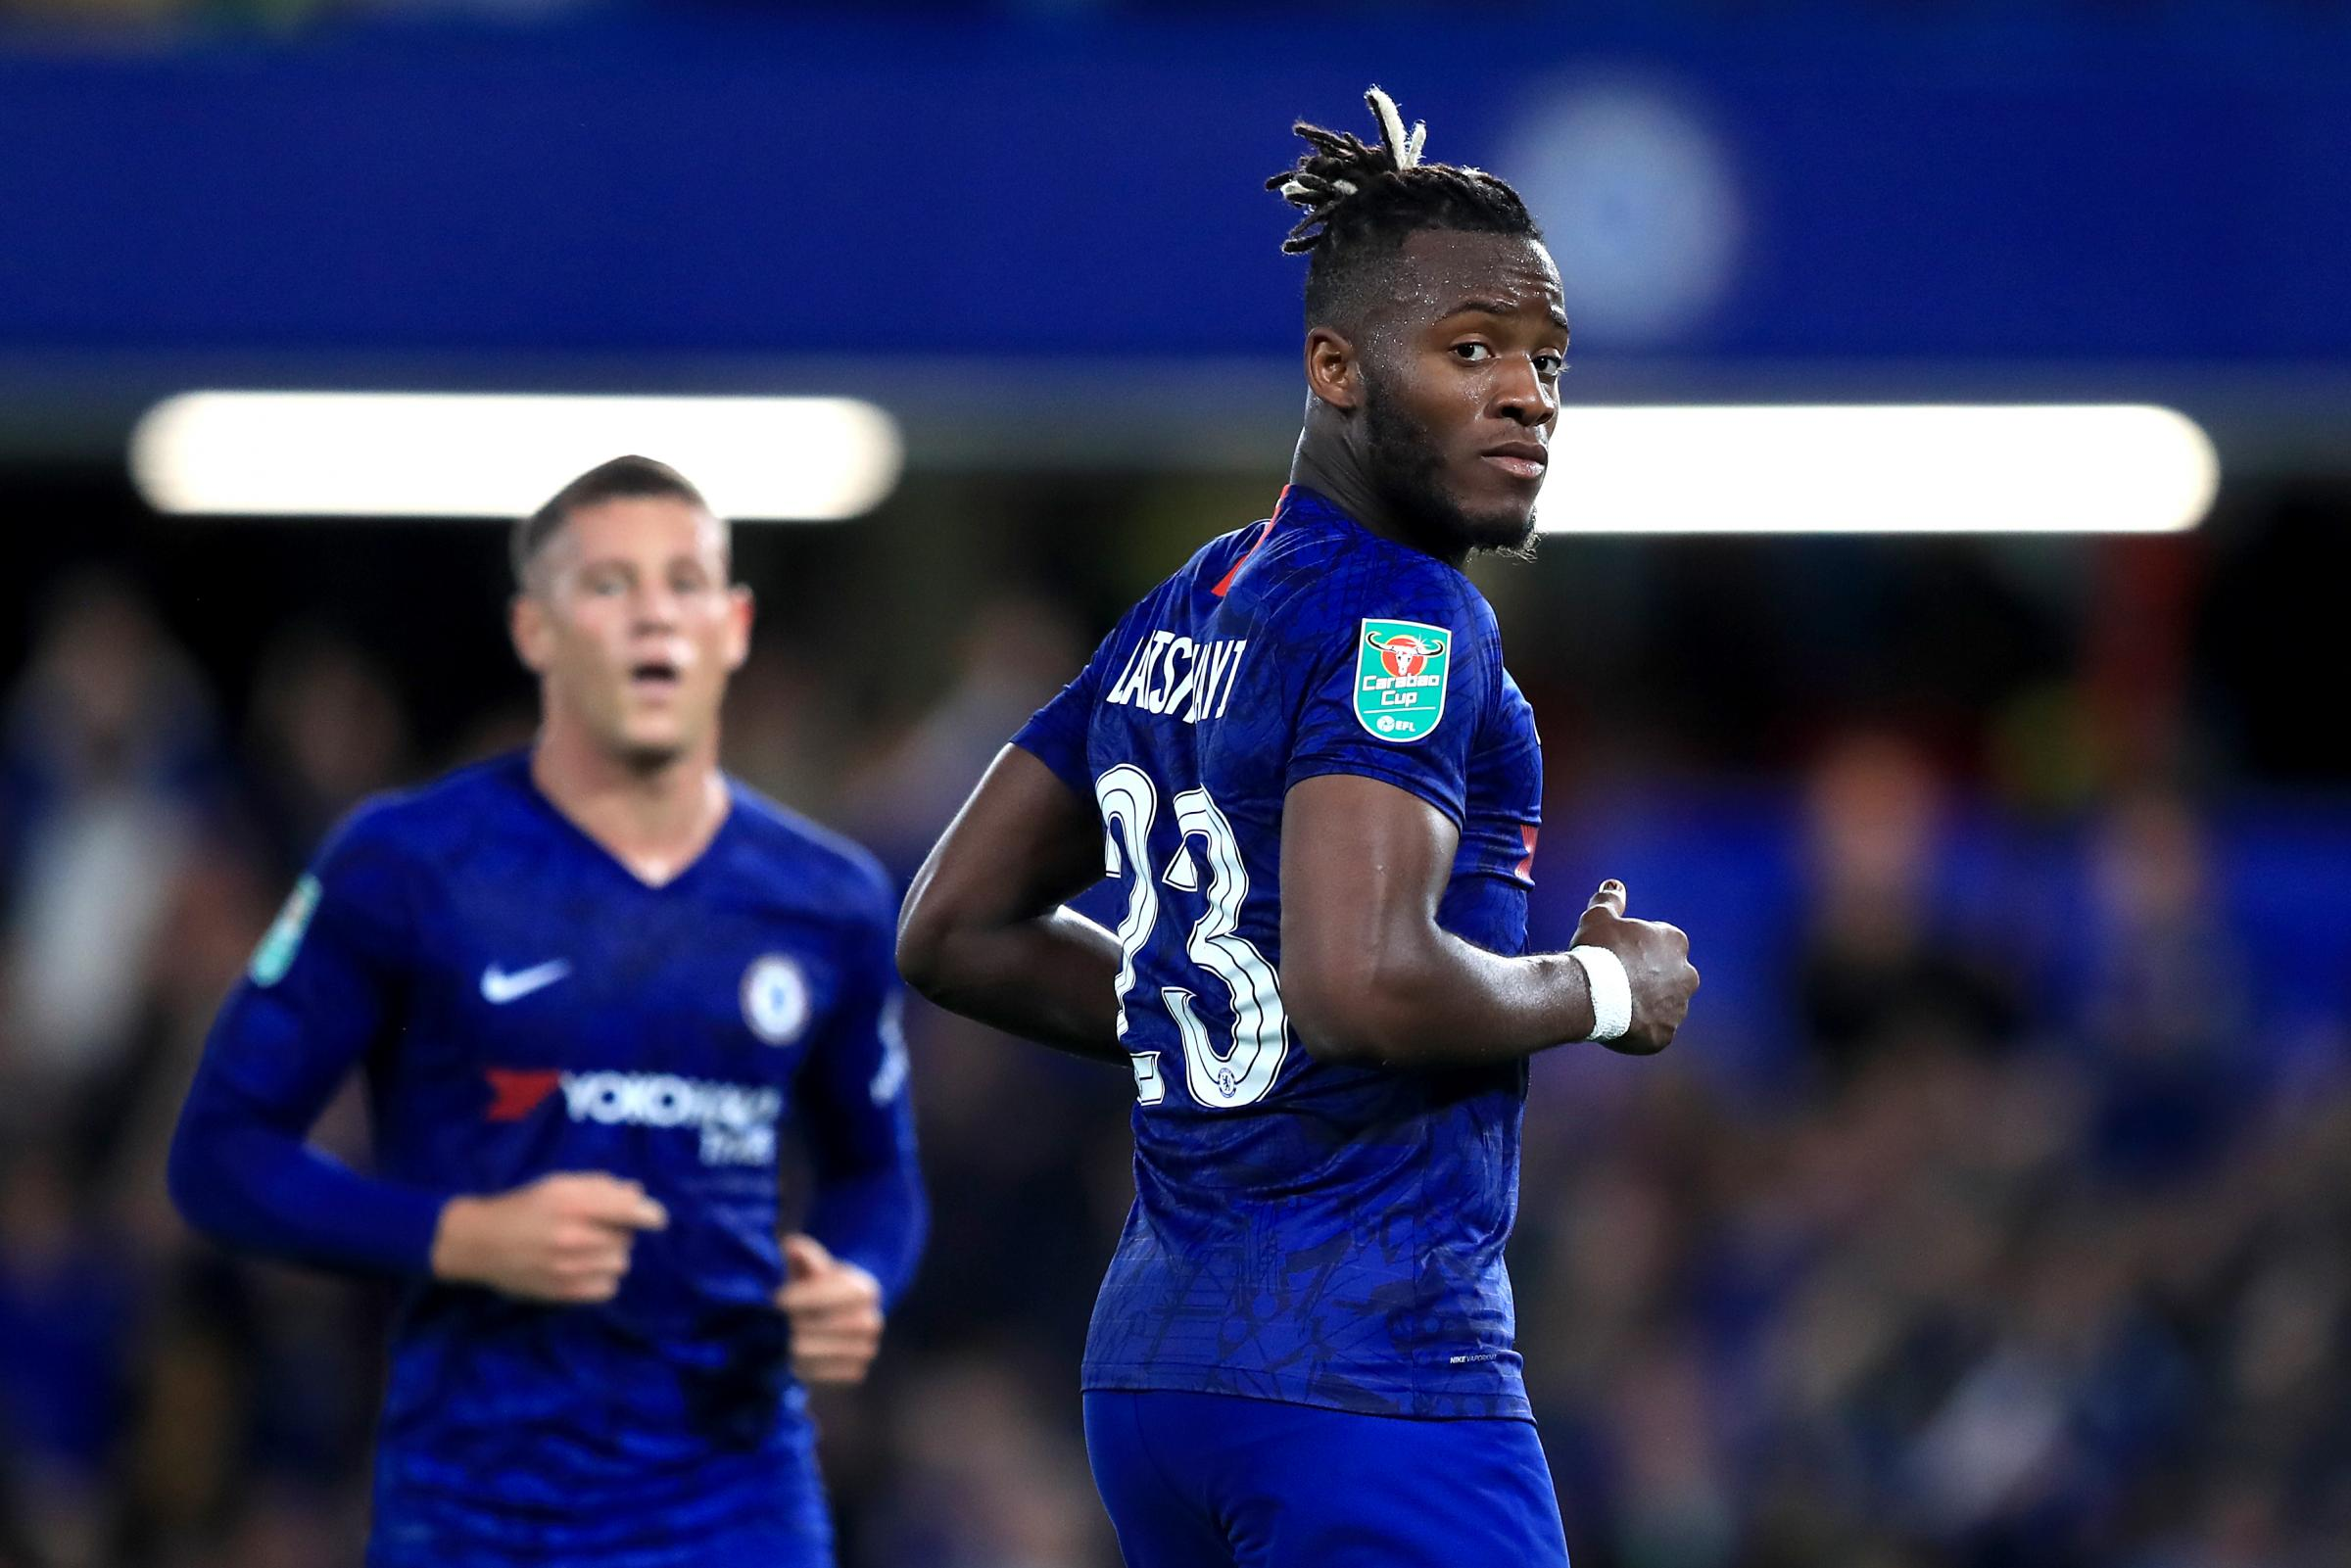 Belgium boss hints at Batshuayi move with Crystal Palace known admirers